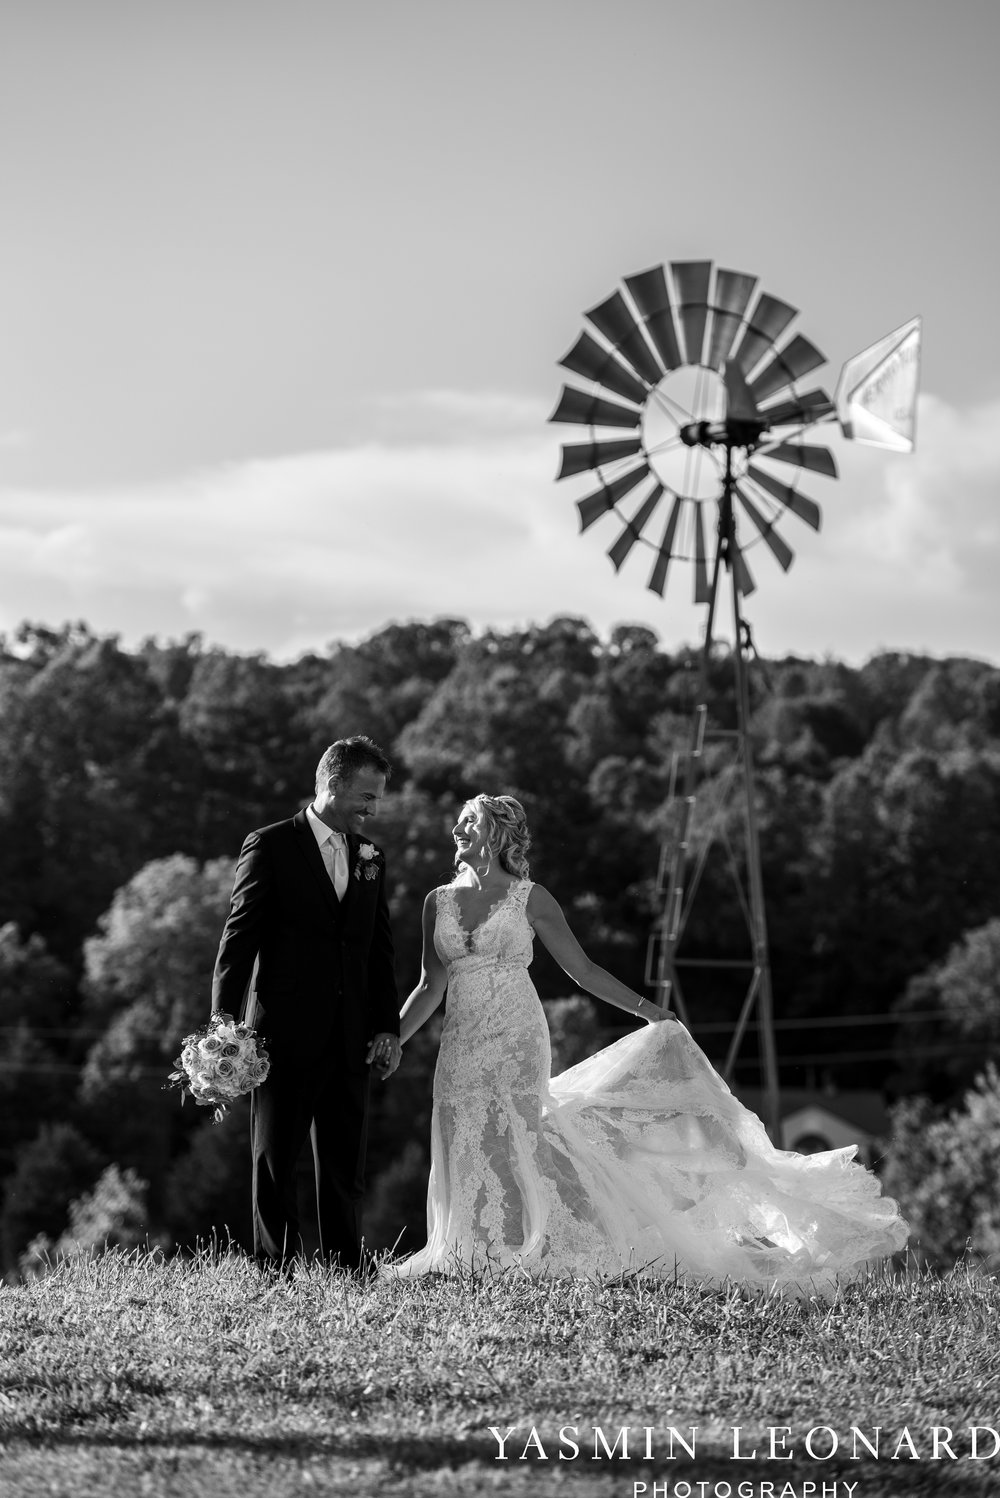 Elkin Creek Vineyard - Elkin Creek Weddings - NC Wine - NC Wineries - NC Weddings - NC Photographers - NC Wedding Photographer - NC Winery Wedding Ideas - Yasmin Leonard Photography - High Point Wedding Photographer-62.jpg